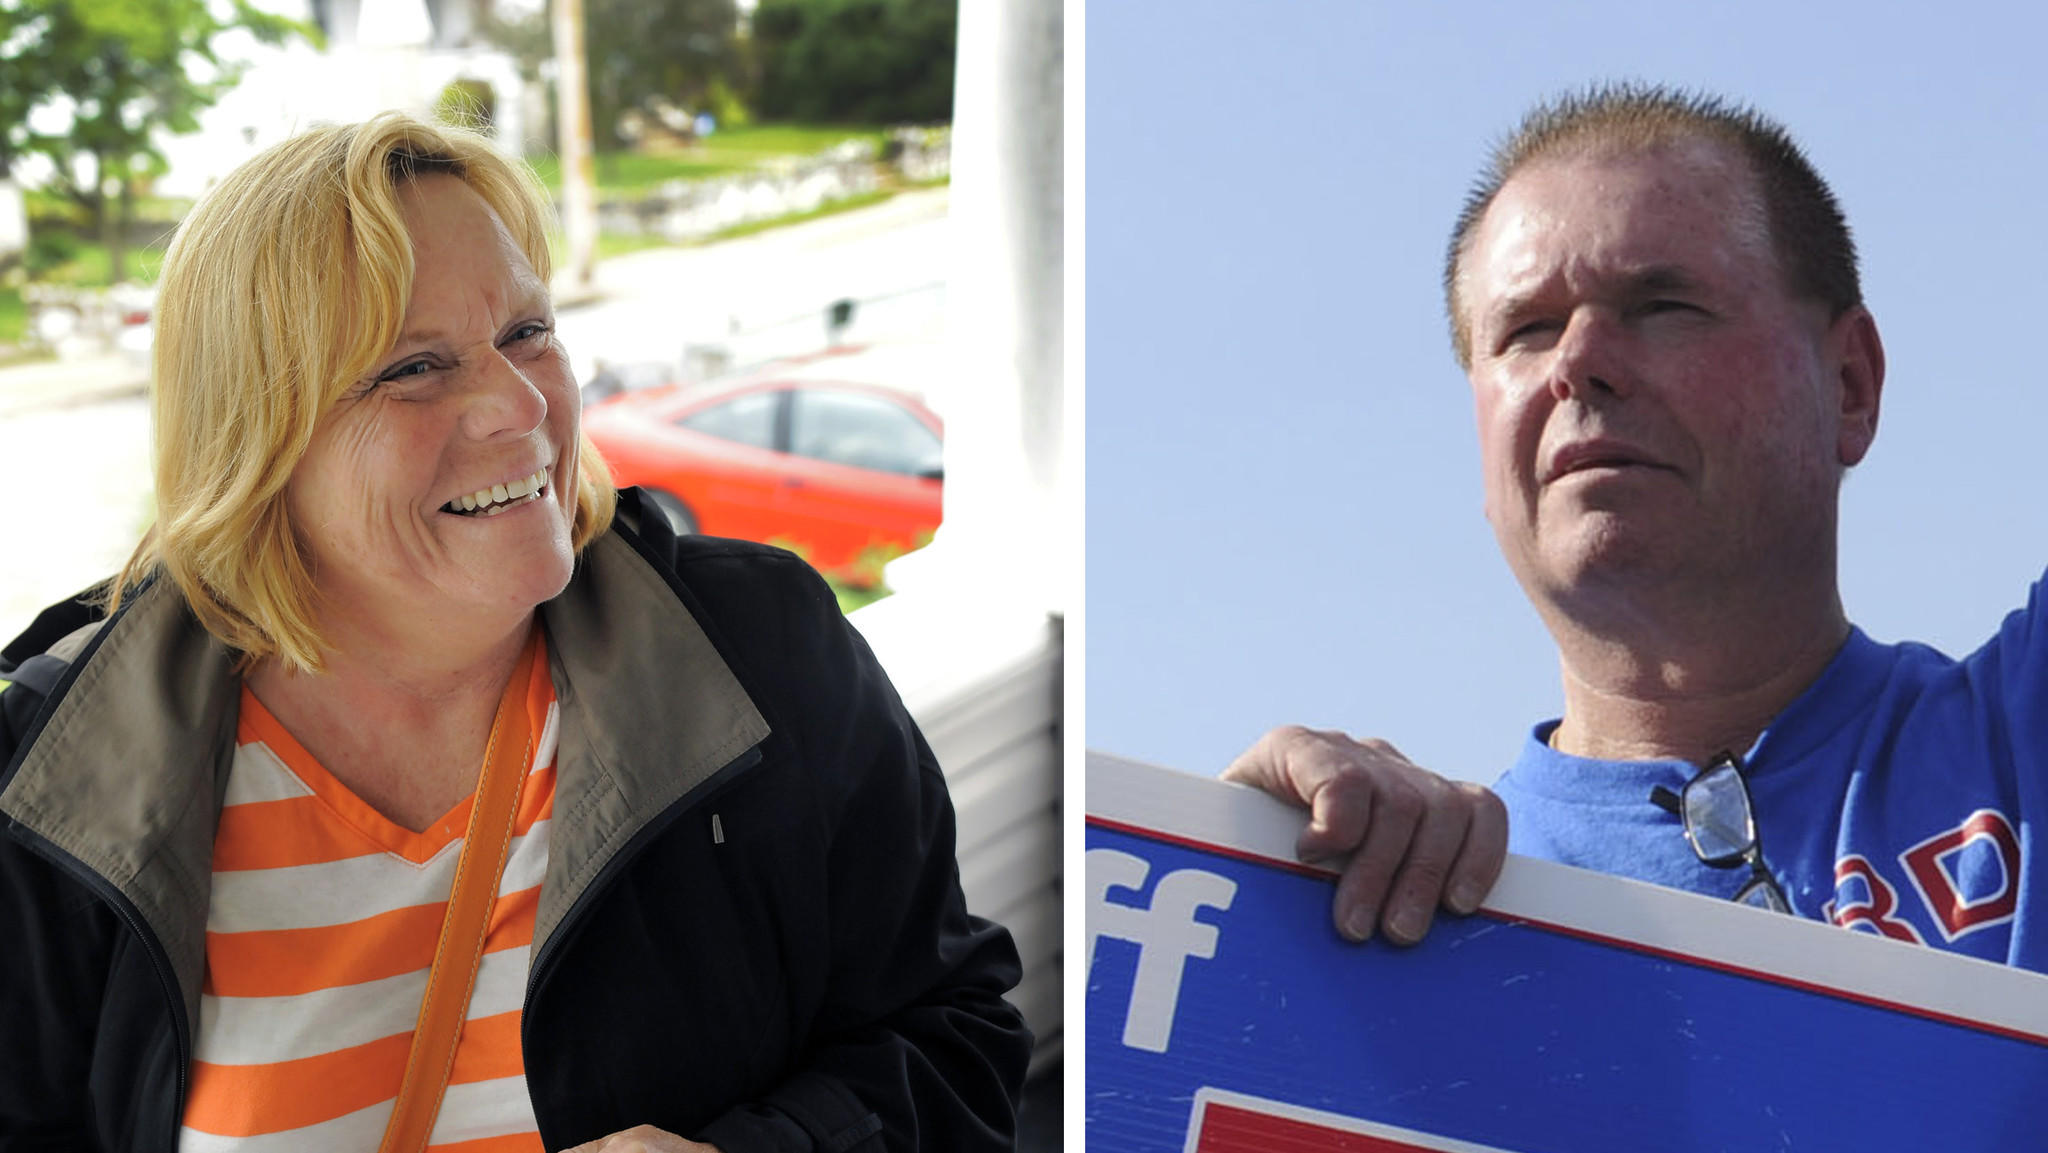 Baltimore County Councilwoman Cathy Bevins is being challenged in the primary by Jeff Beard in the Baltimore County Council's 6th District. The race is one of several in the council with a contested primary.